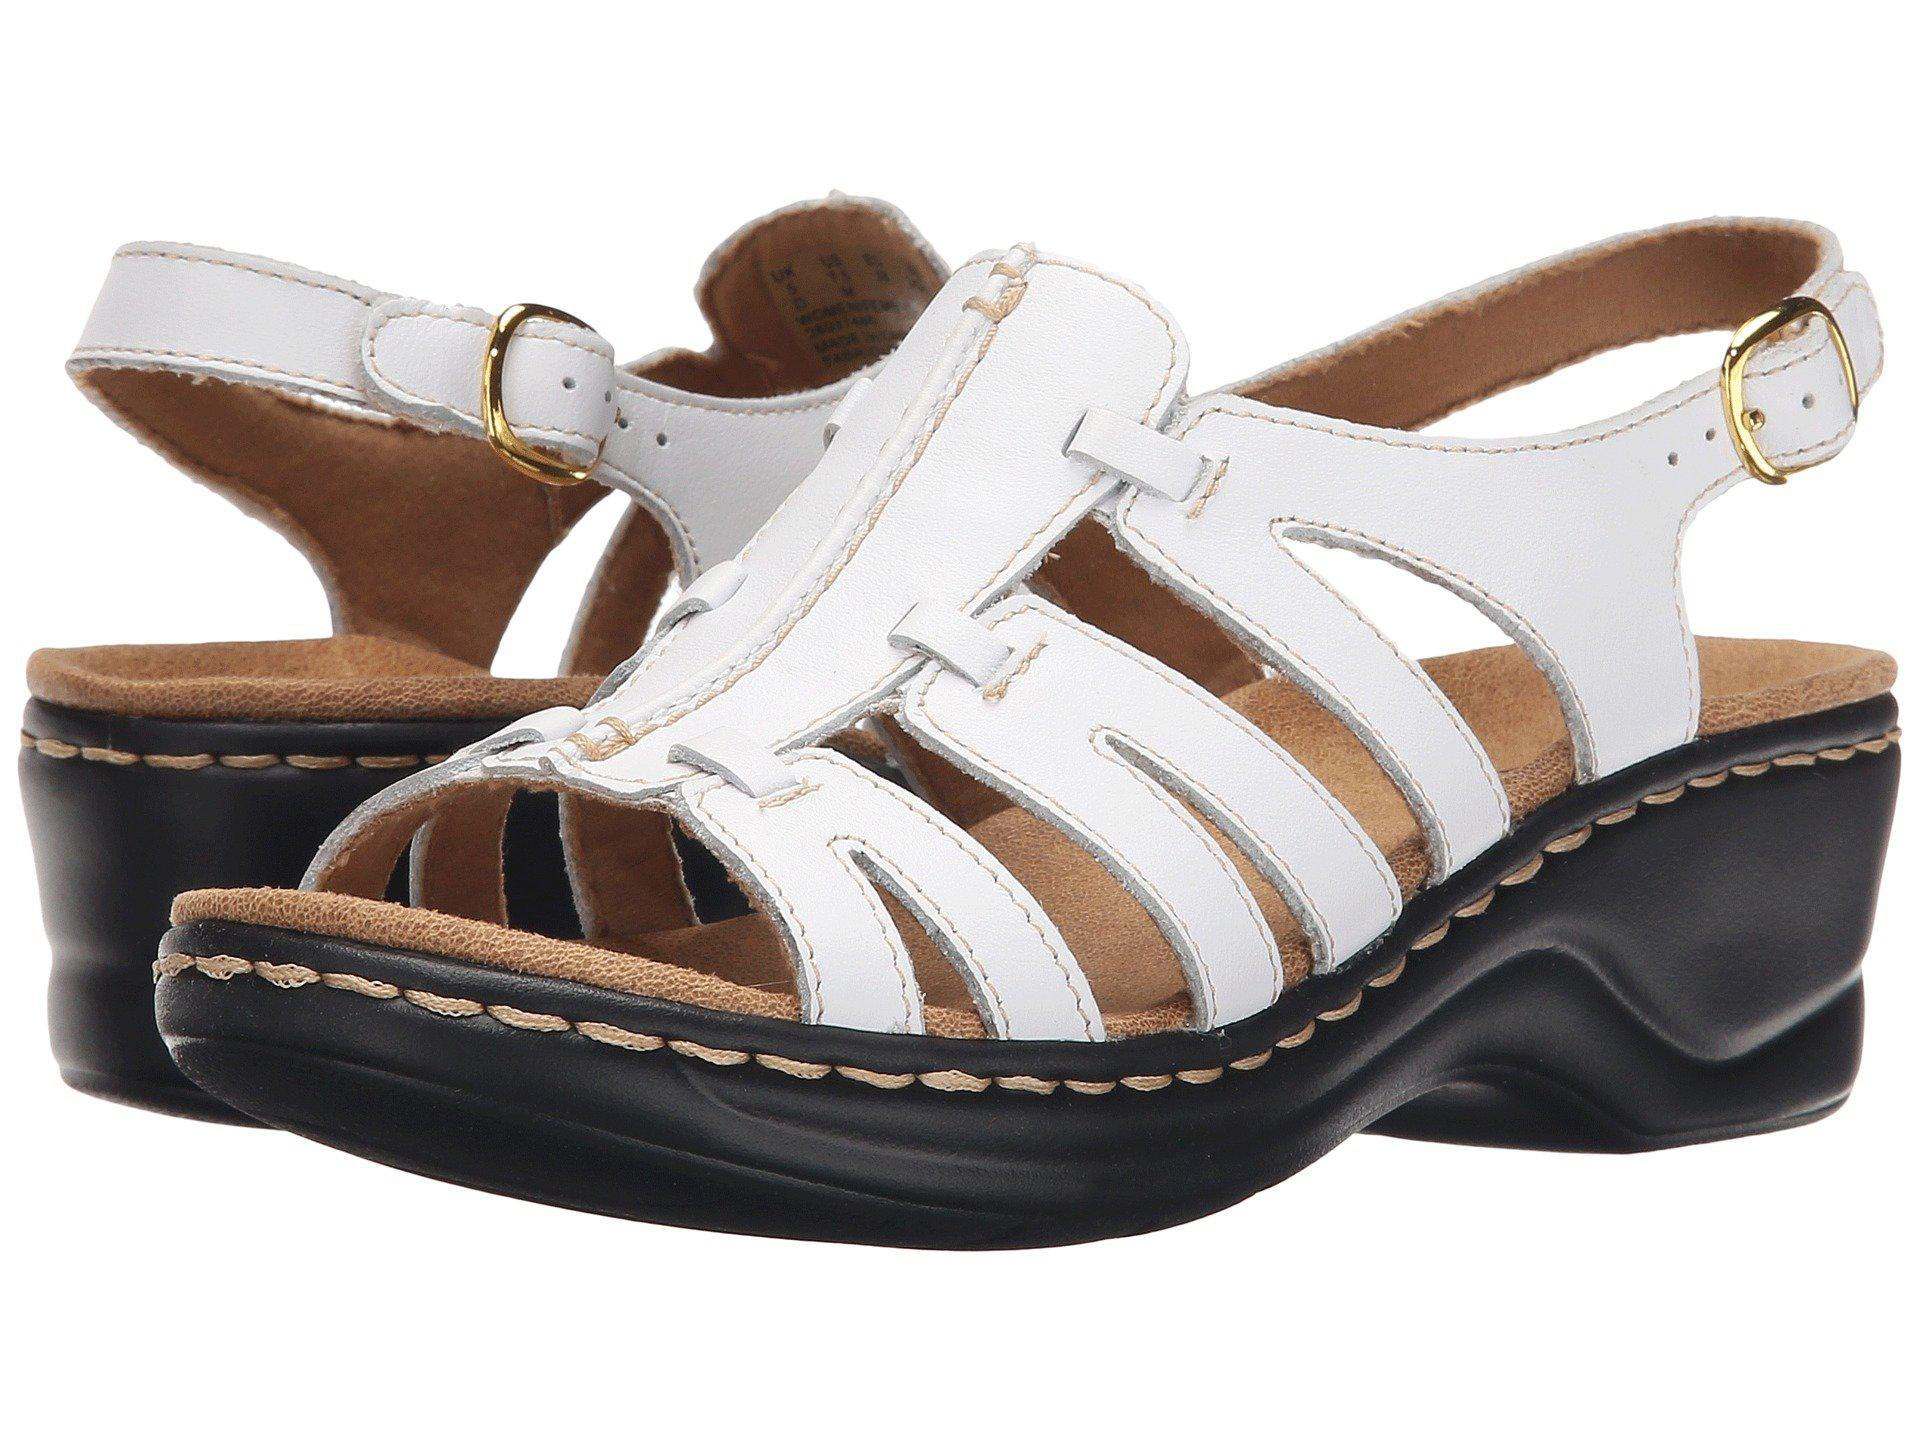 ff7844865f77 Lyst - Clarks Lexi Marigold Q (black Leather) Women s Sandals in White